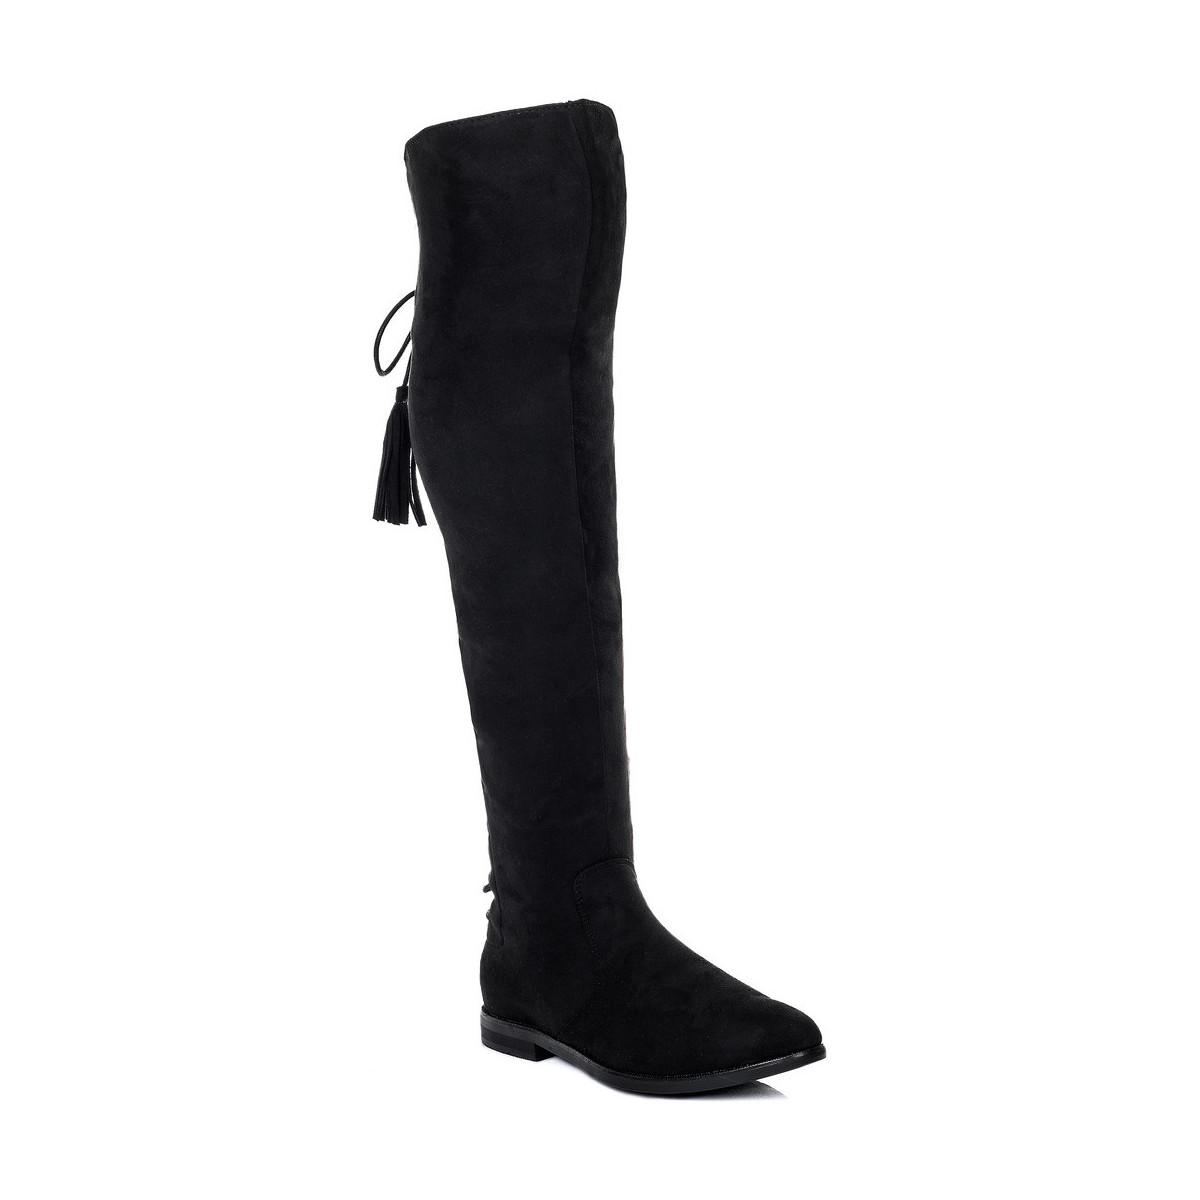 6f6e21208cf Spylovebuy Vive Stretch Flat Knee High Tall Boots - Black Suede ...